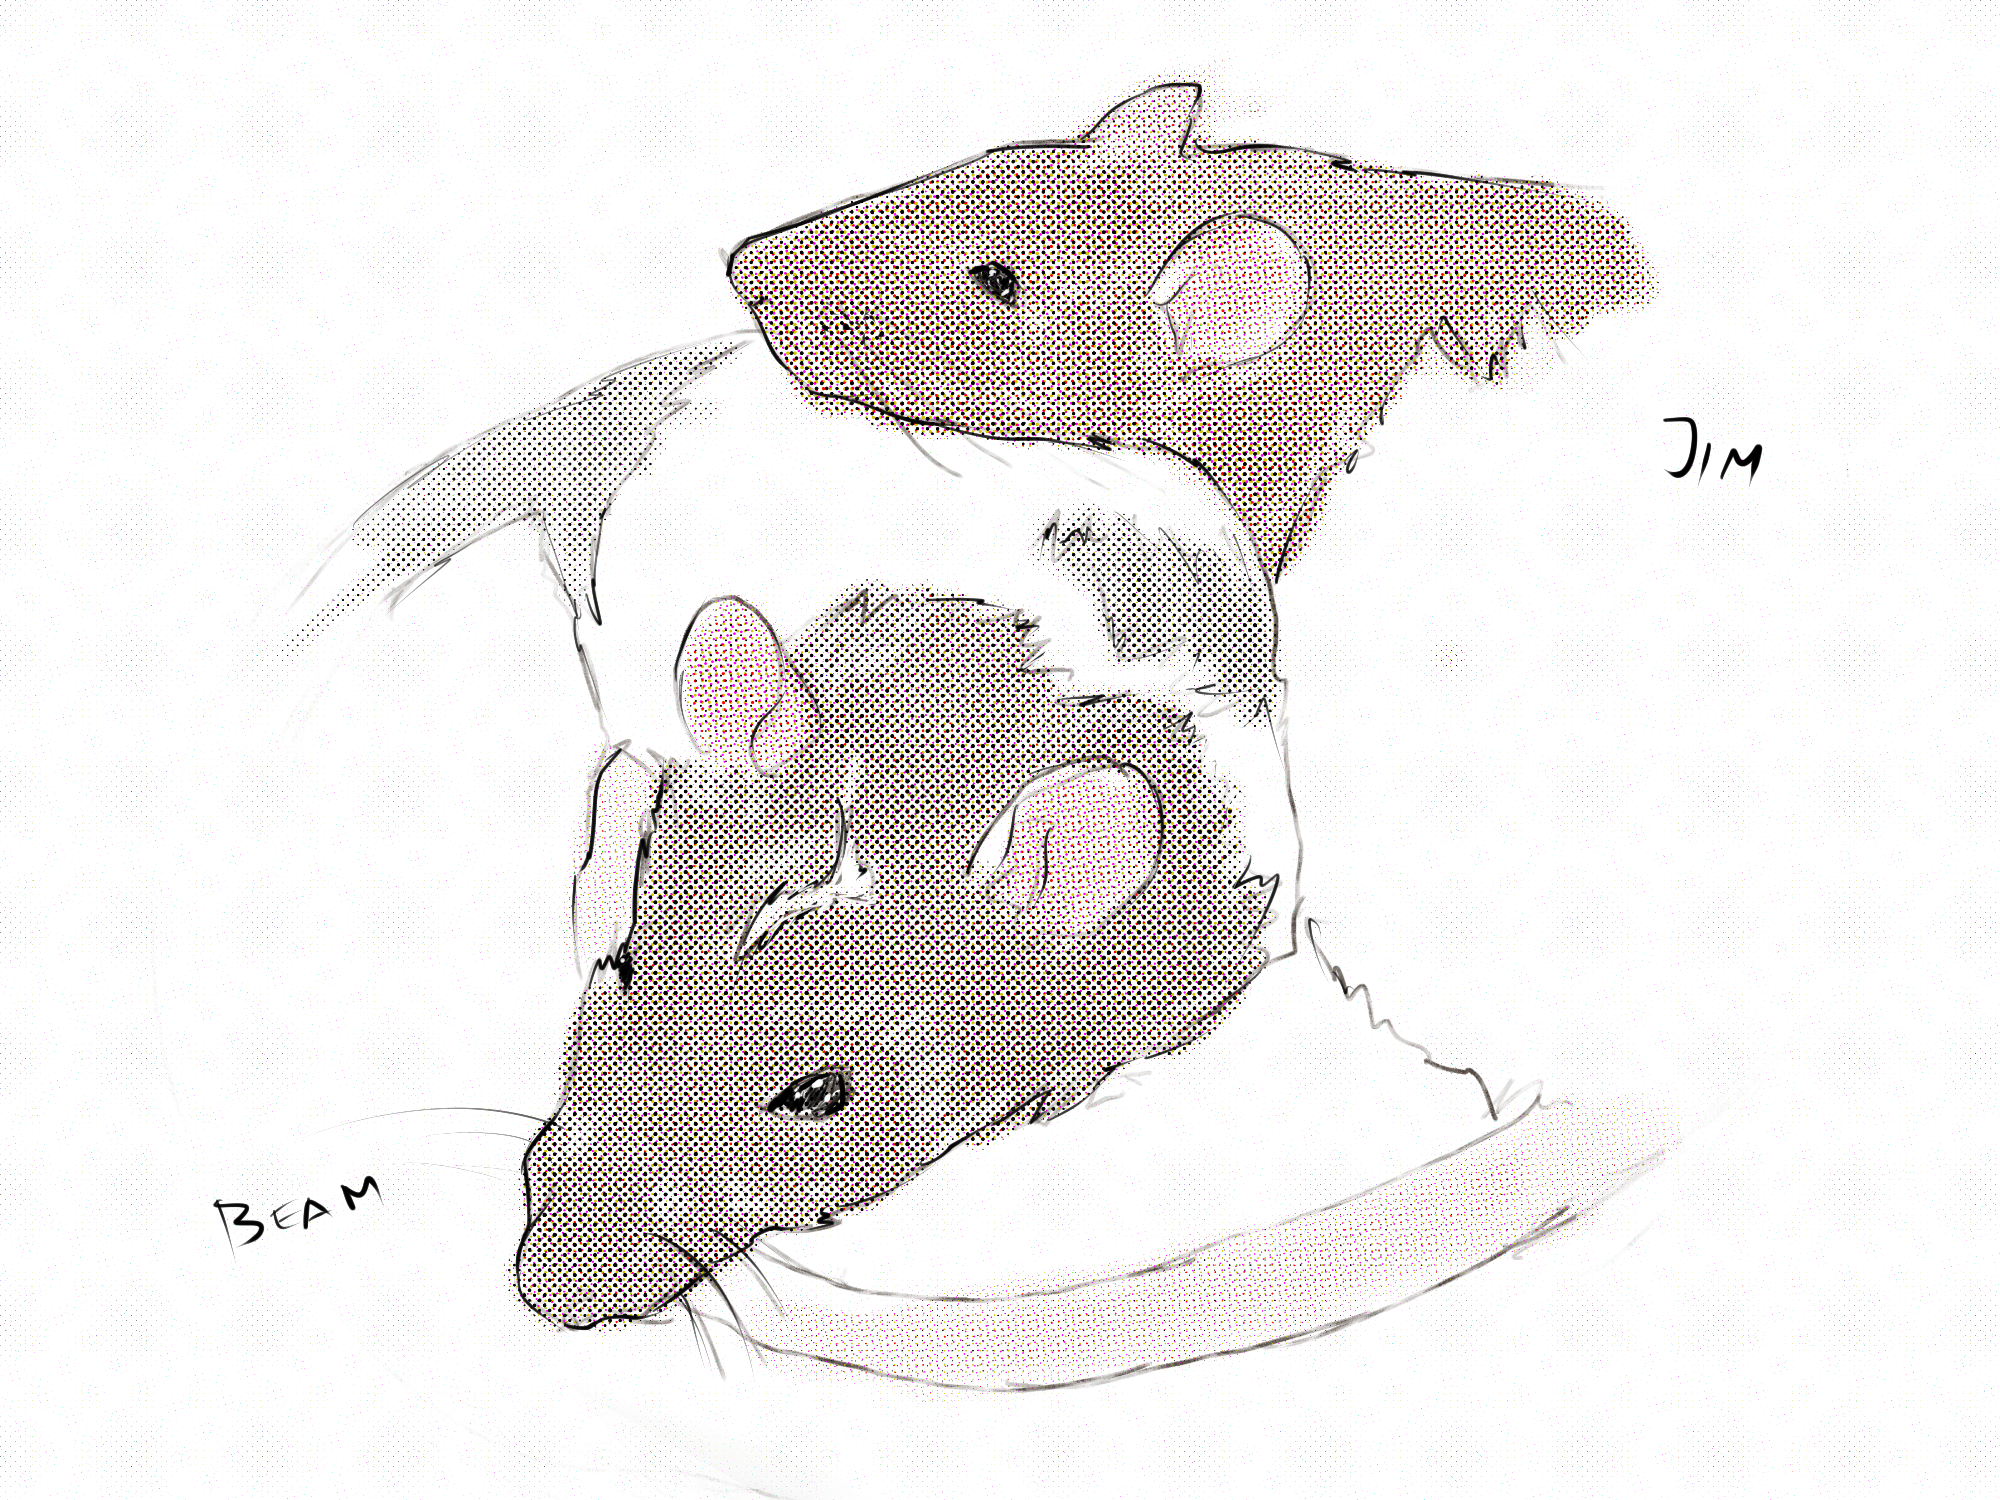 Drawing by Viktoriia Shcherbak of our two rats, Jim and Beam.